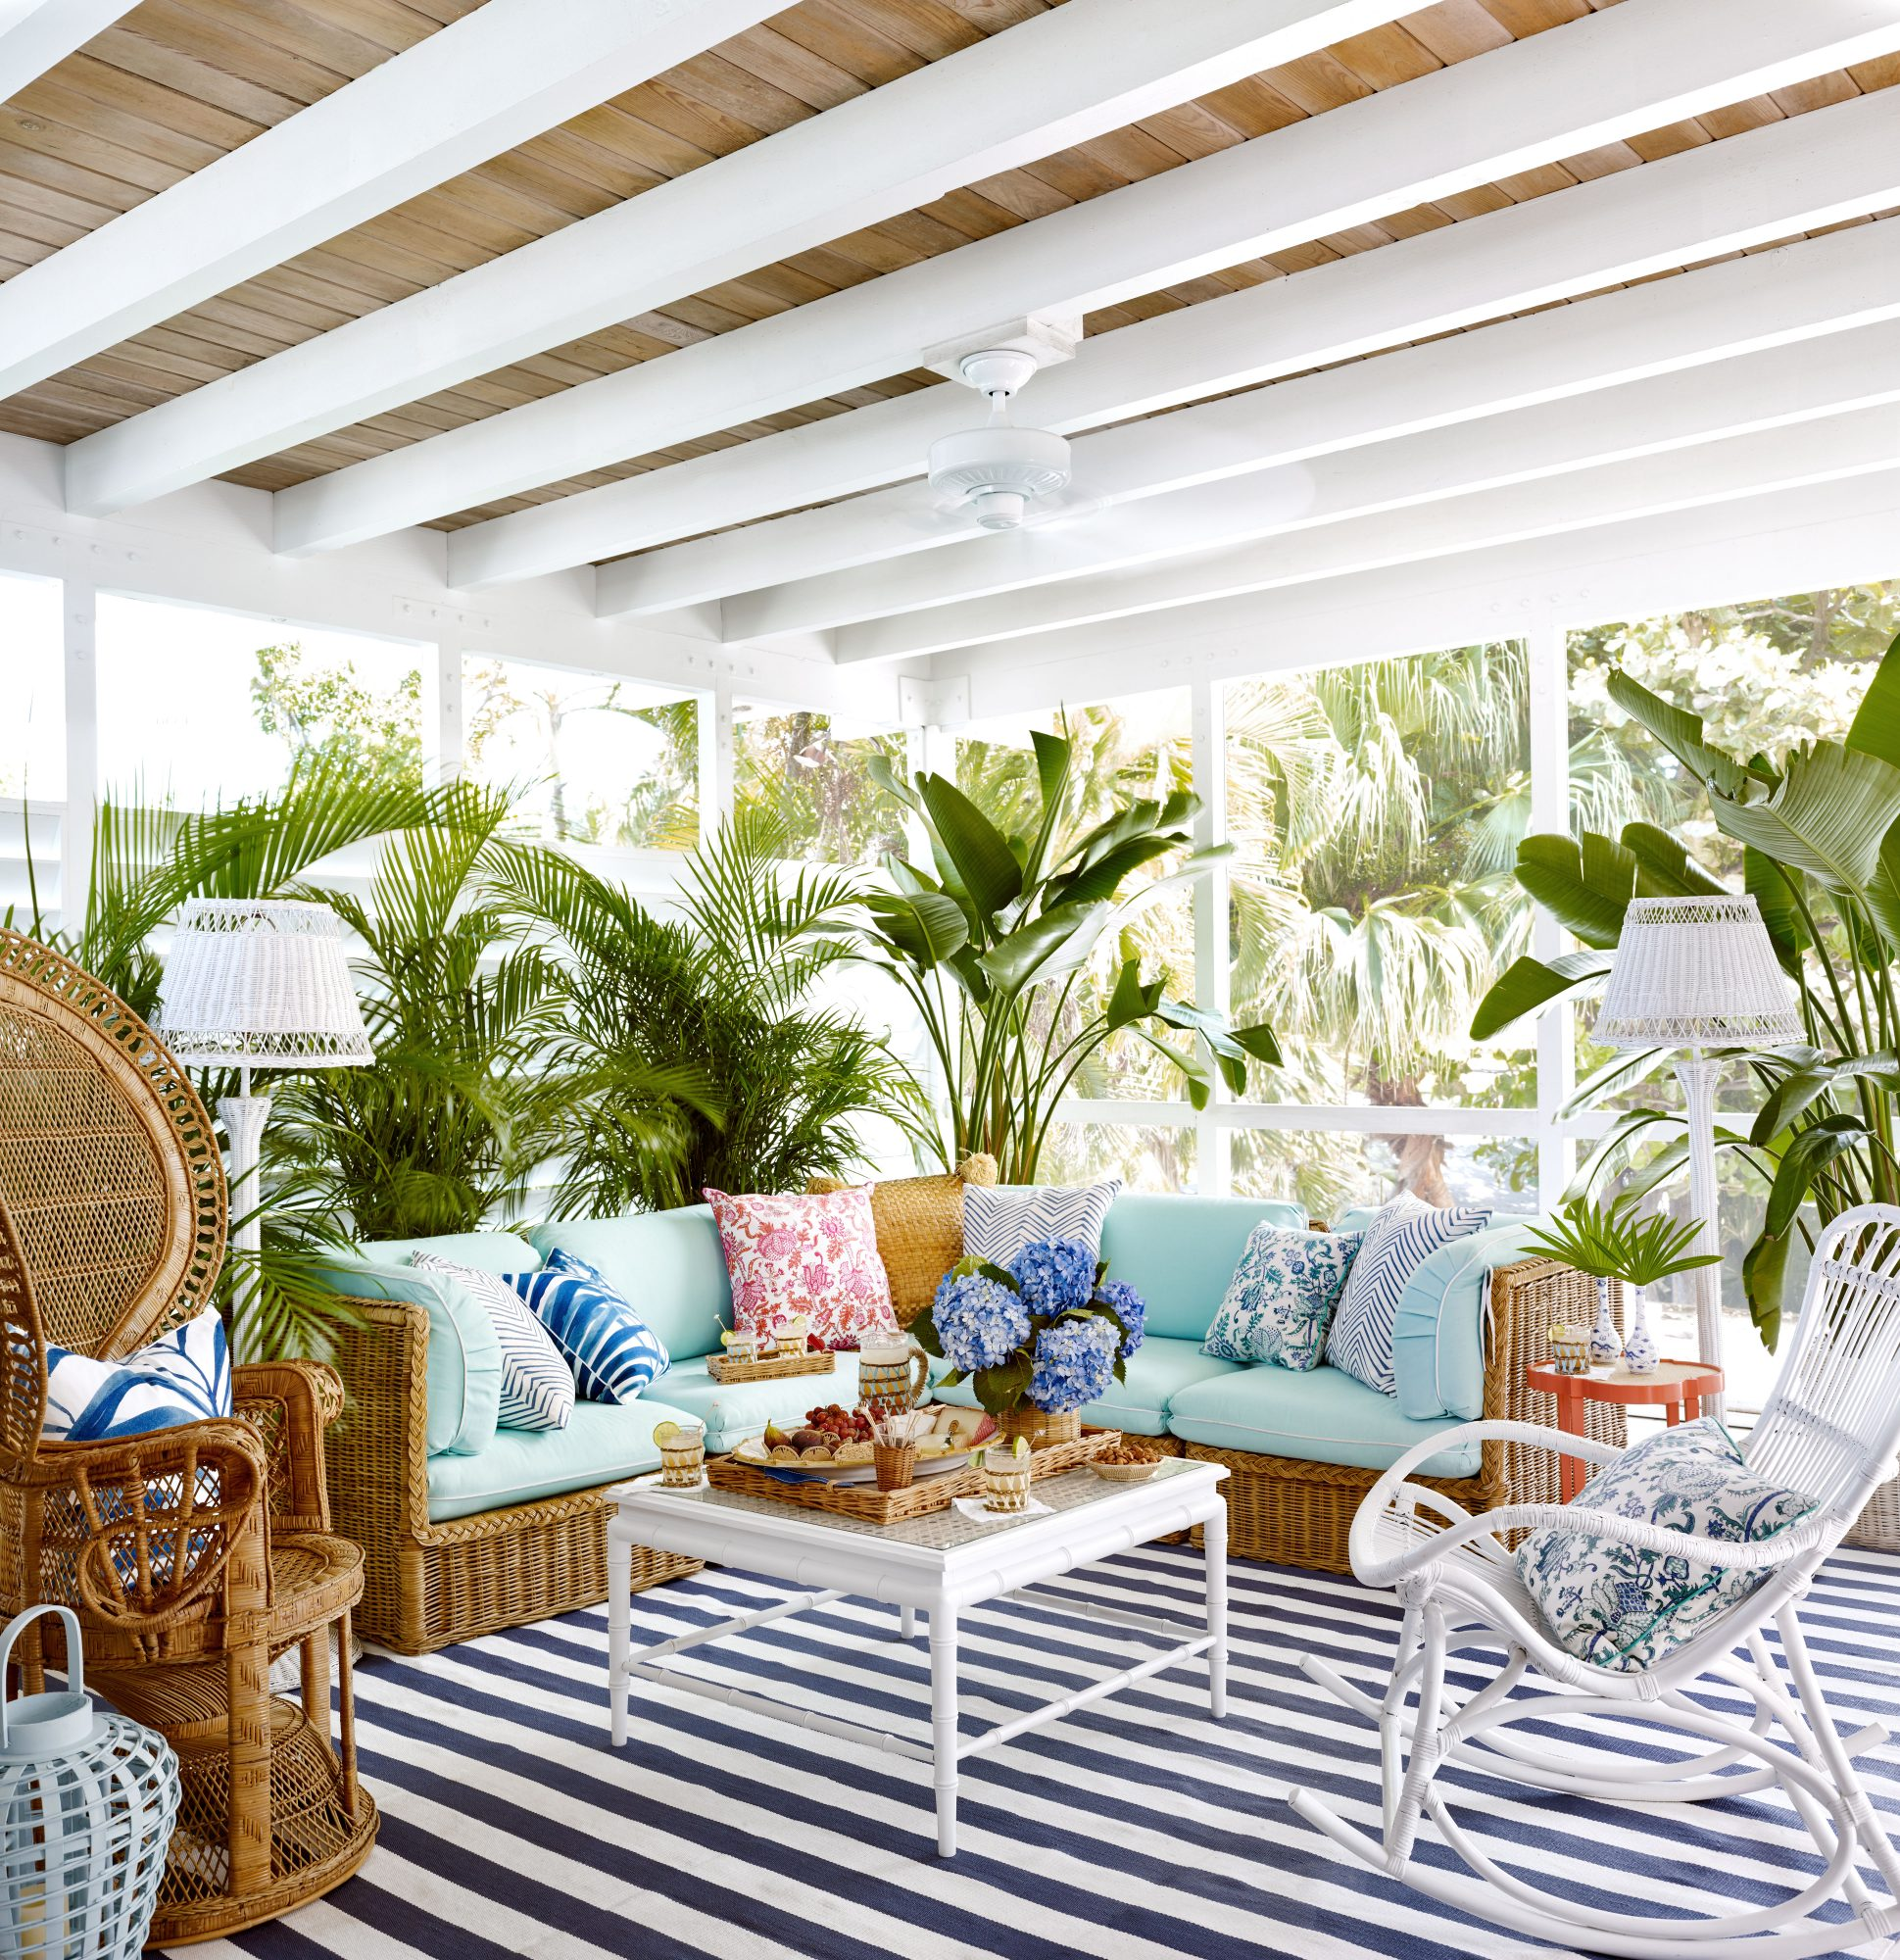 Emily Painter Palm Beach Rental Screened Porch Sitting Area